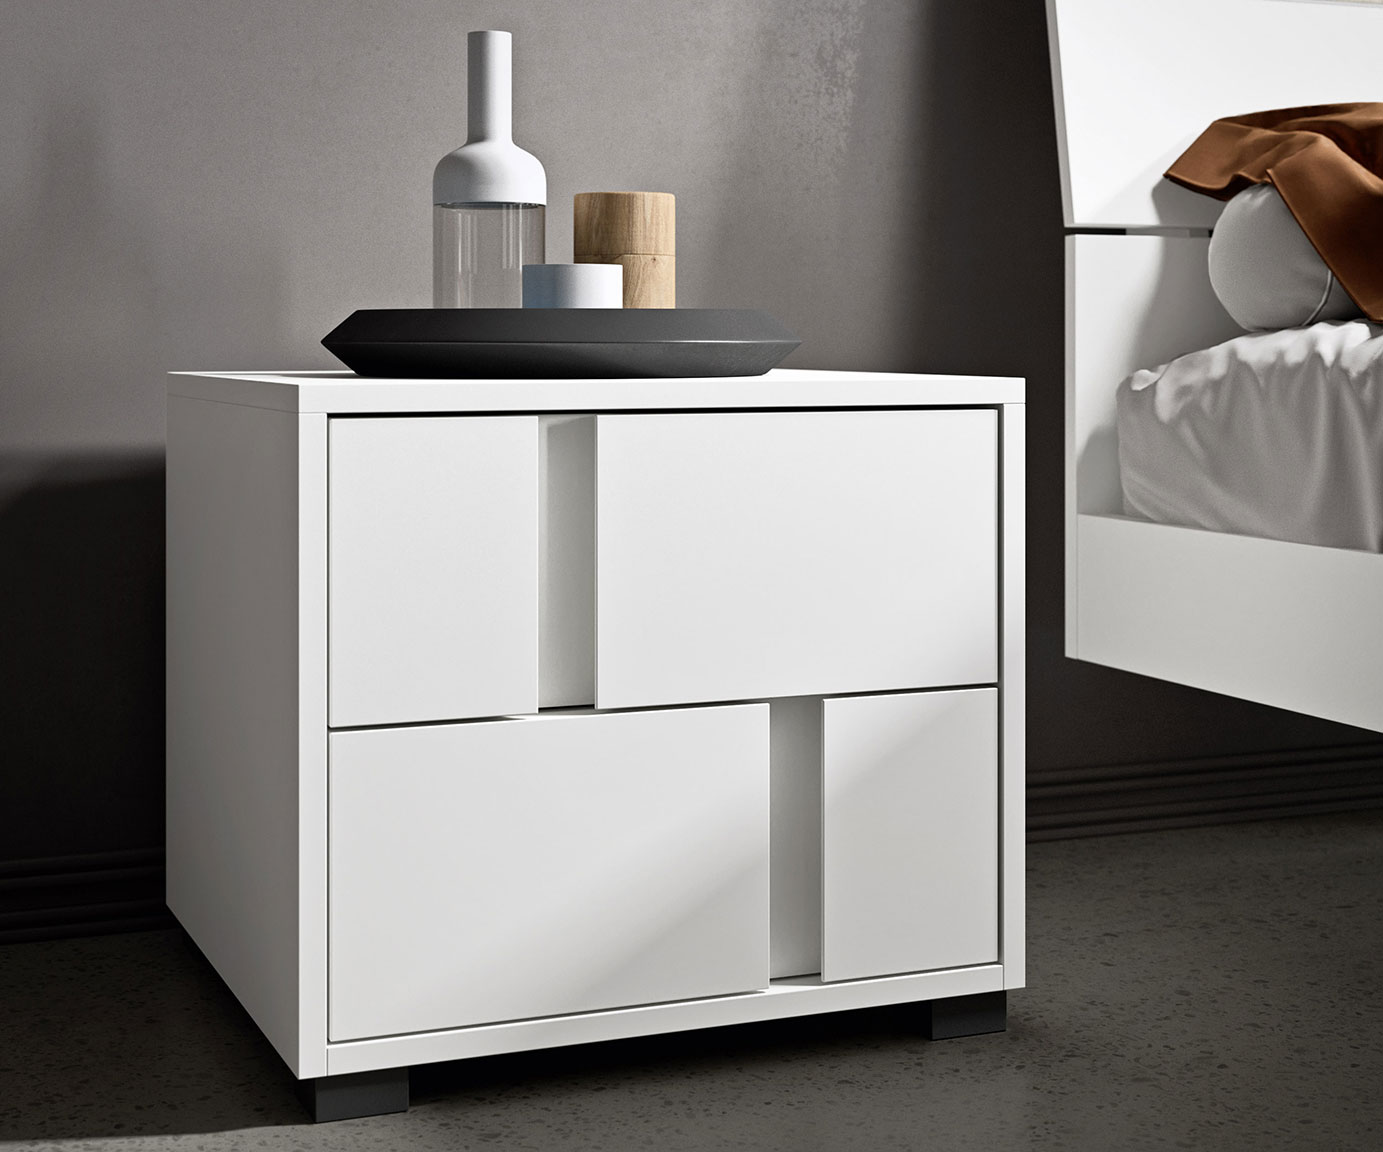 Contemporary style glide bedsides, drawer units and chests 4